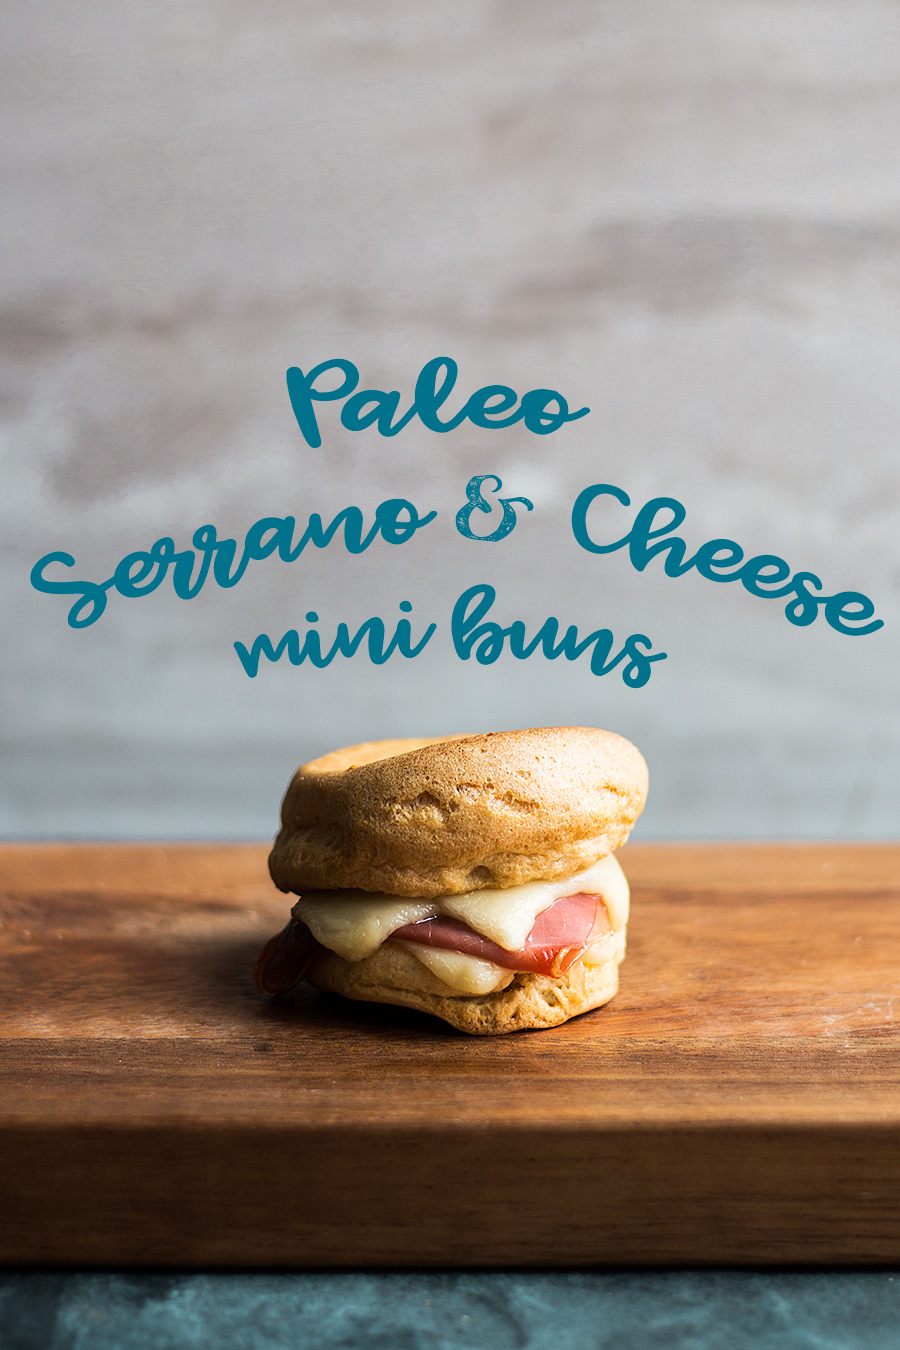 Serrano and cheese mini buns by Laura Domingo (Paleo + Gluten free)